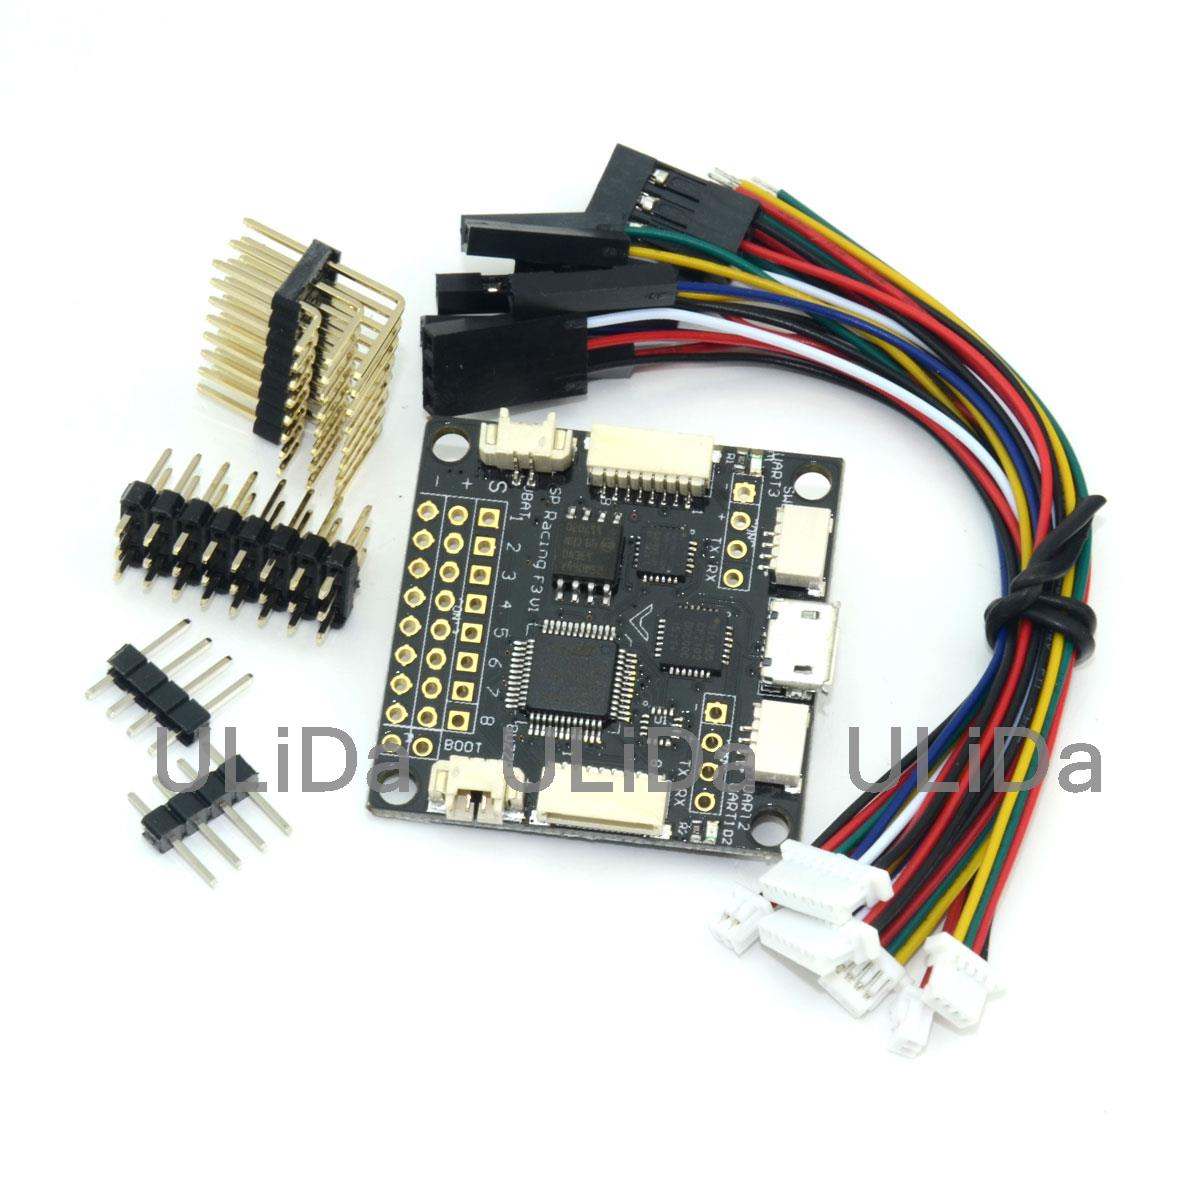 SP Racing F3 ACRO Flight Controller Board FC for FPV Quadcopter Multicopter rc helicopters toys spracing f3 acrd acro sp3 racing f3 flight controller board aircraft fpv quadcopter speed control for ocday